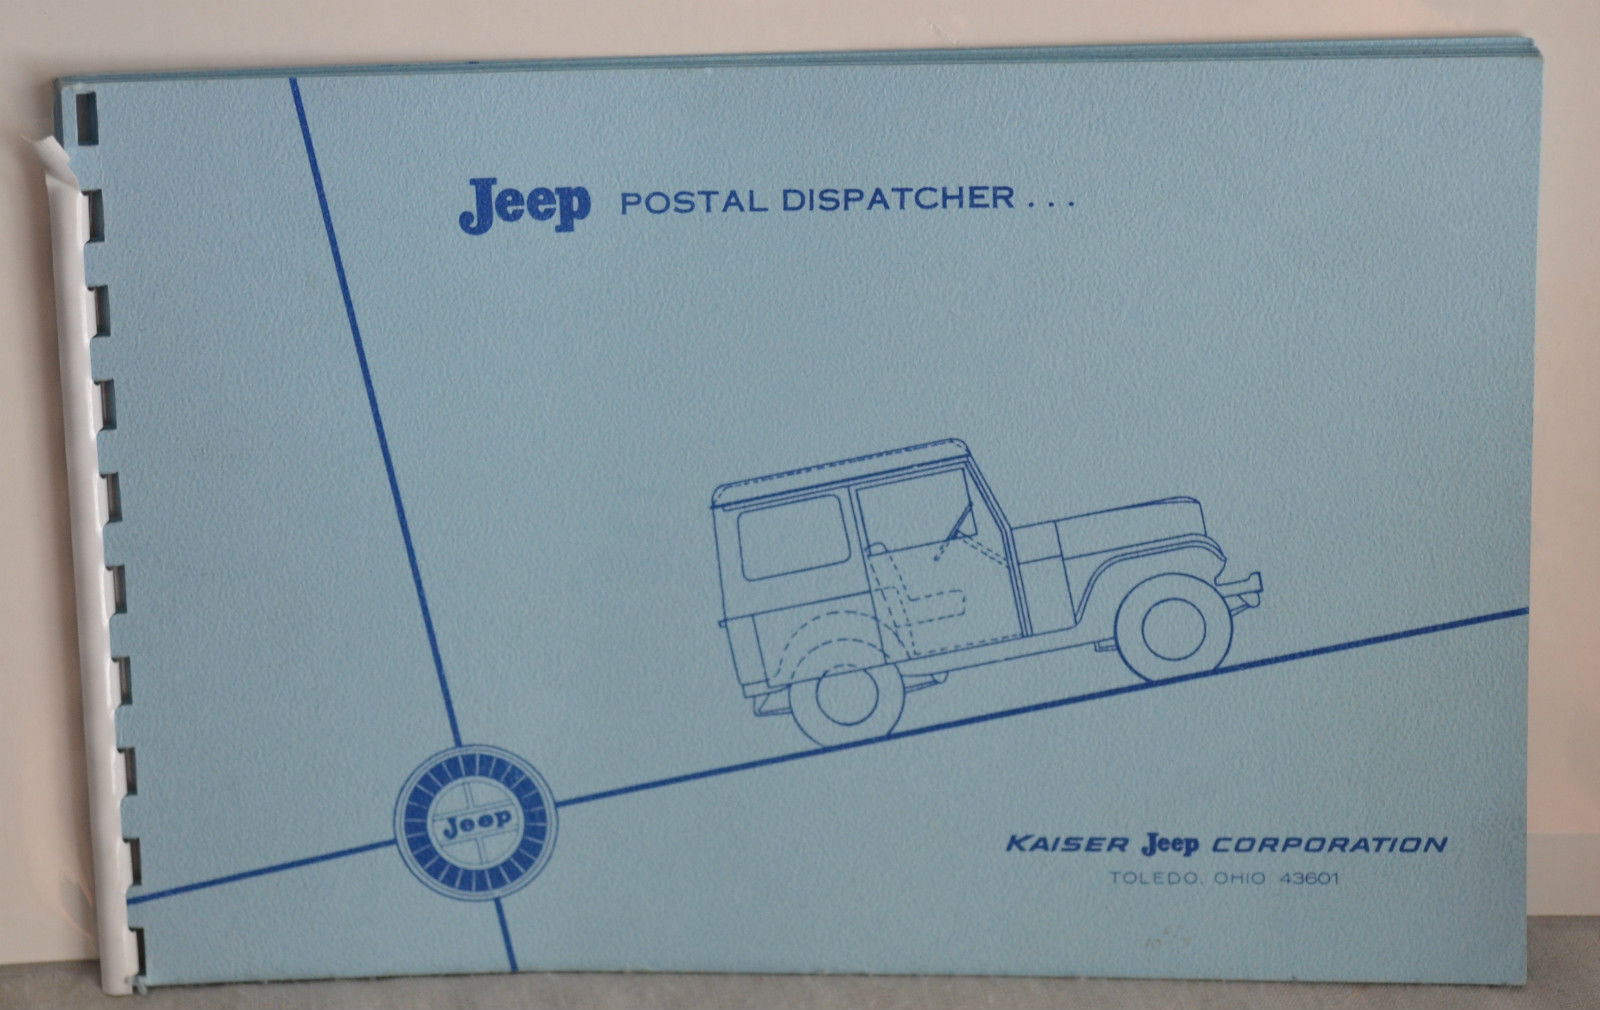 hight resolution of dj5 postal jeep dispatcher brochure2